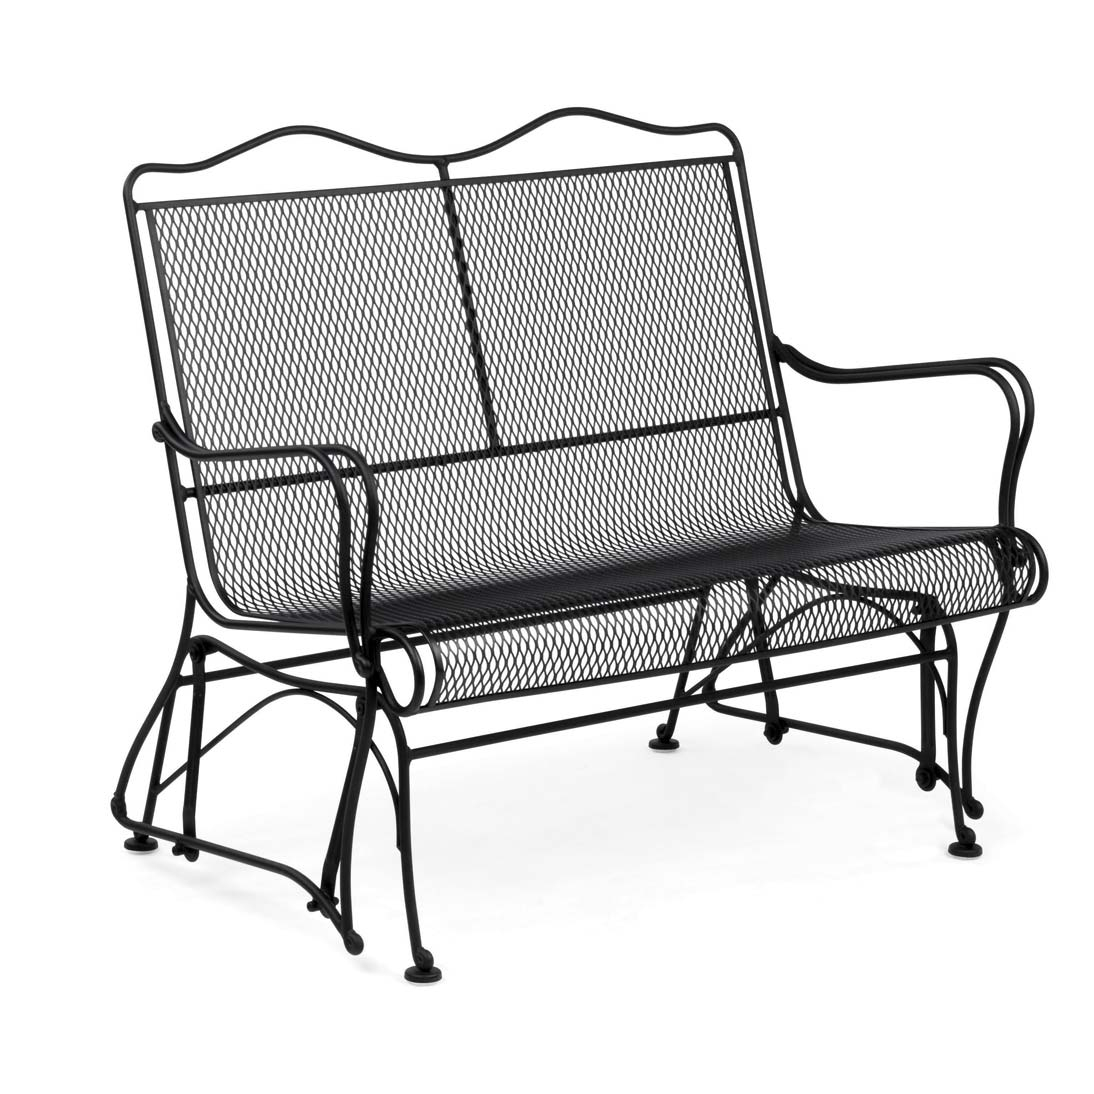 Mesh Patio Chairs Pictured Is The Tucson Micro Mesh High Back Gliding Chair